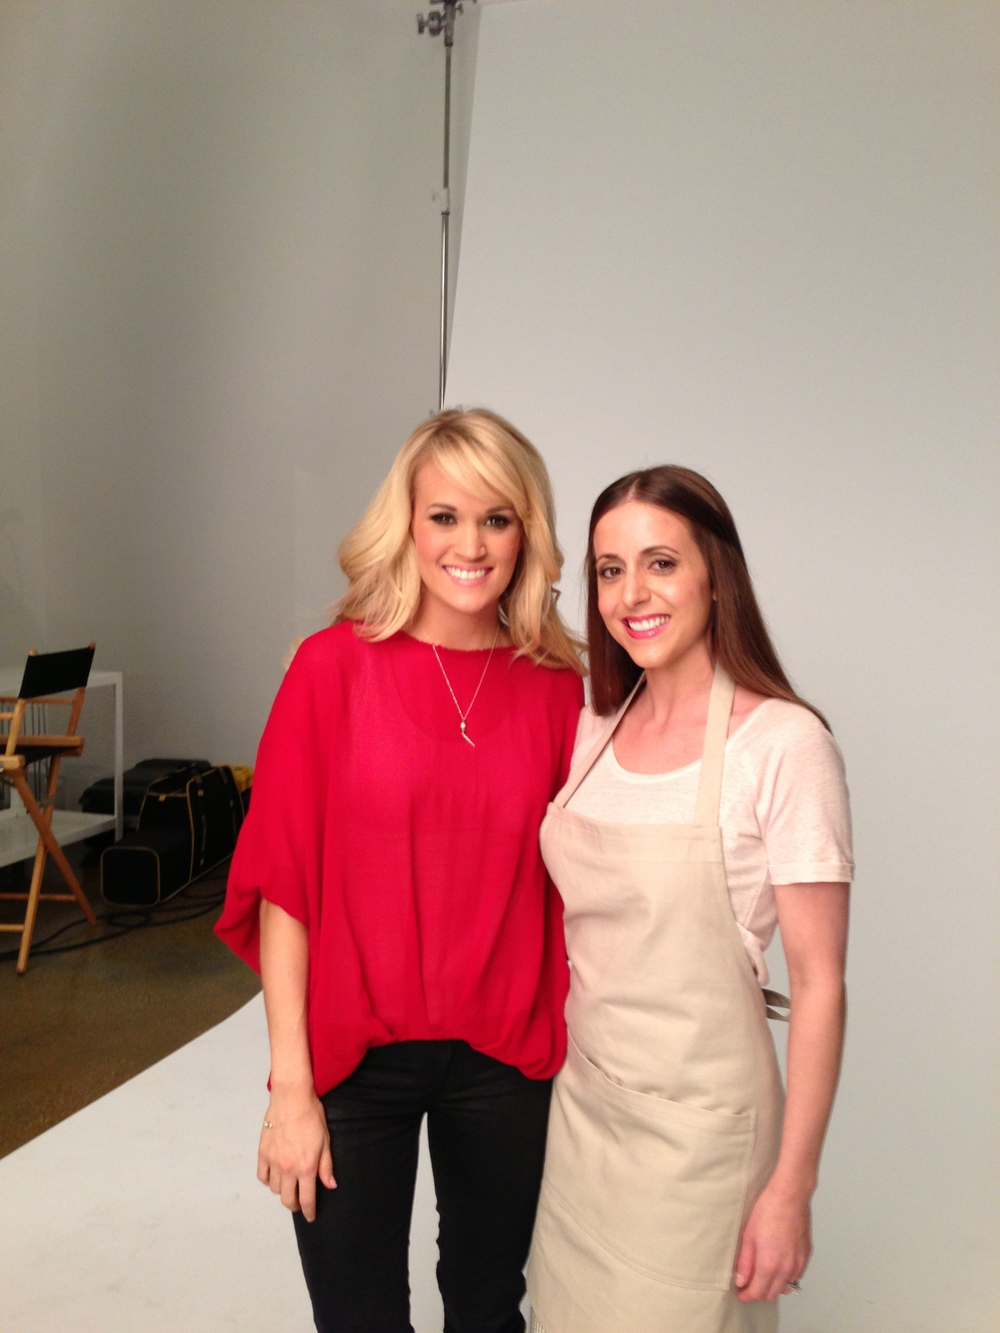 LeeAnn with Carrie Underwood on set